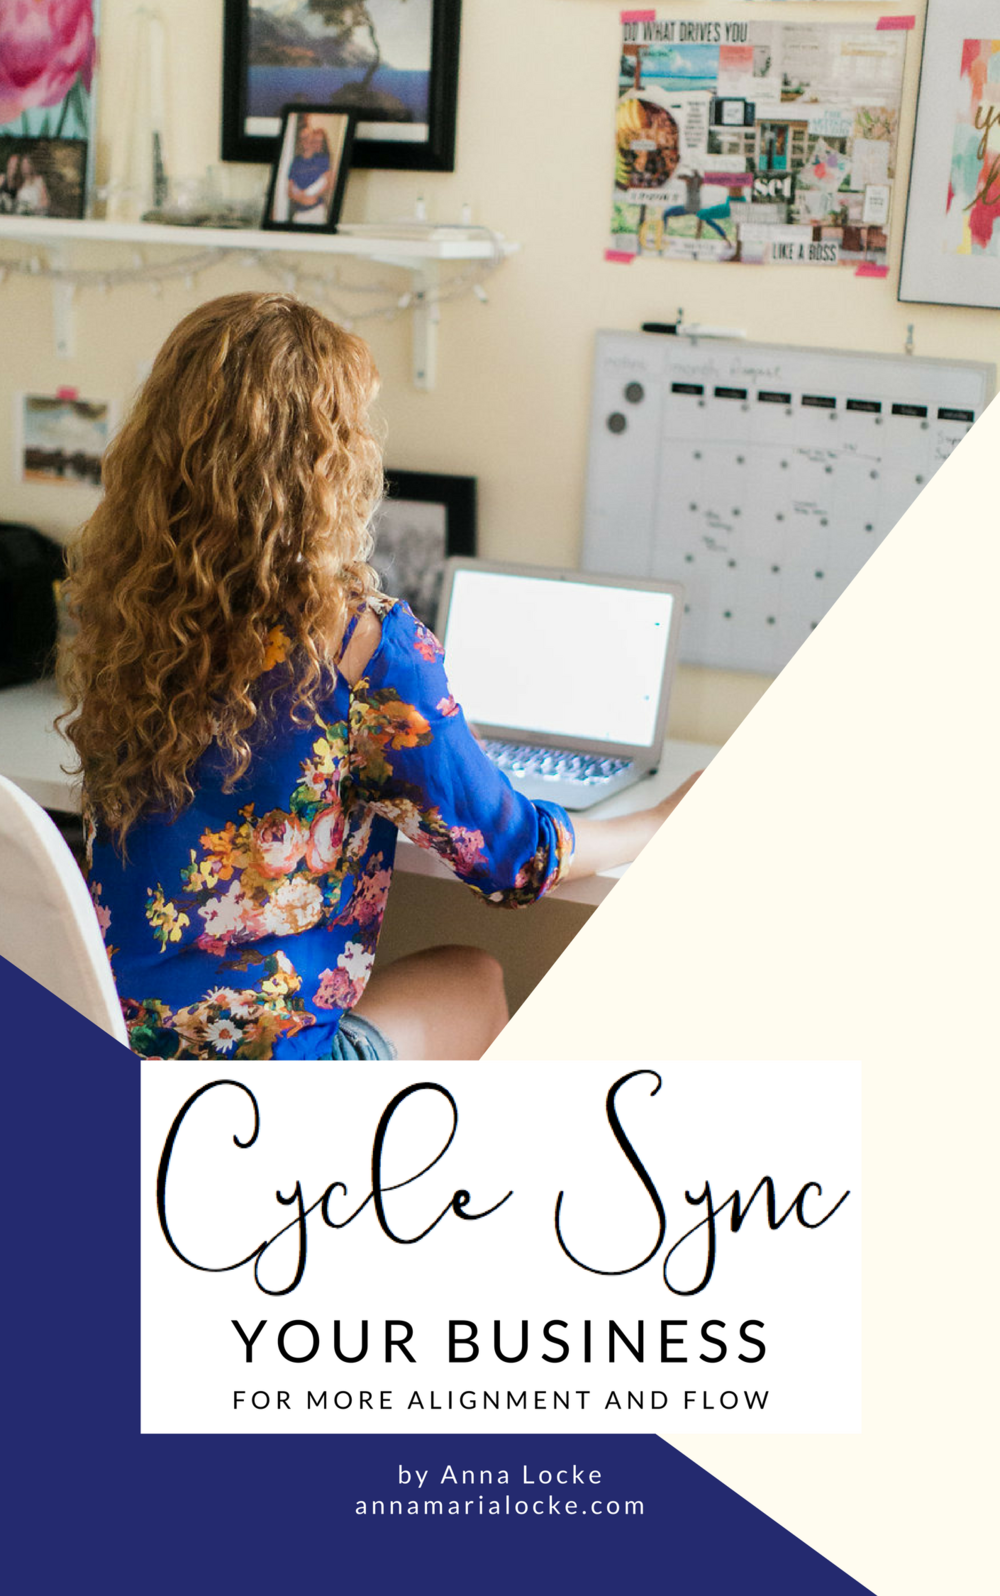 cycle sync your biz ebook